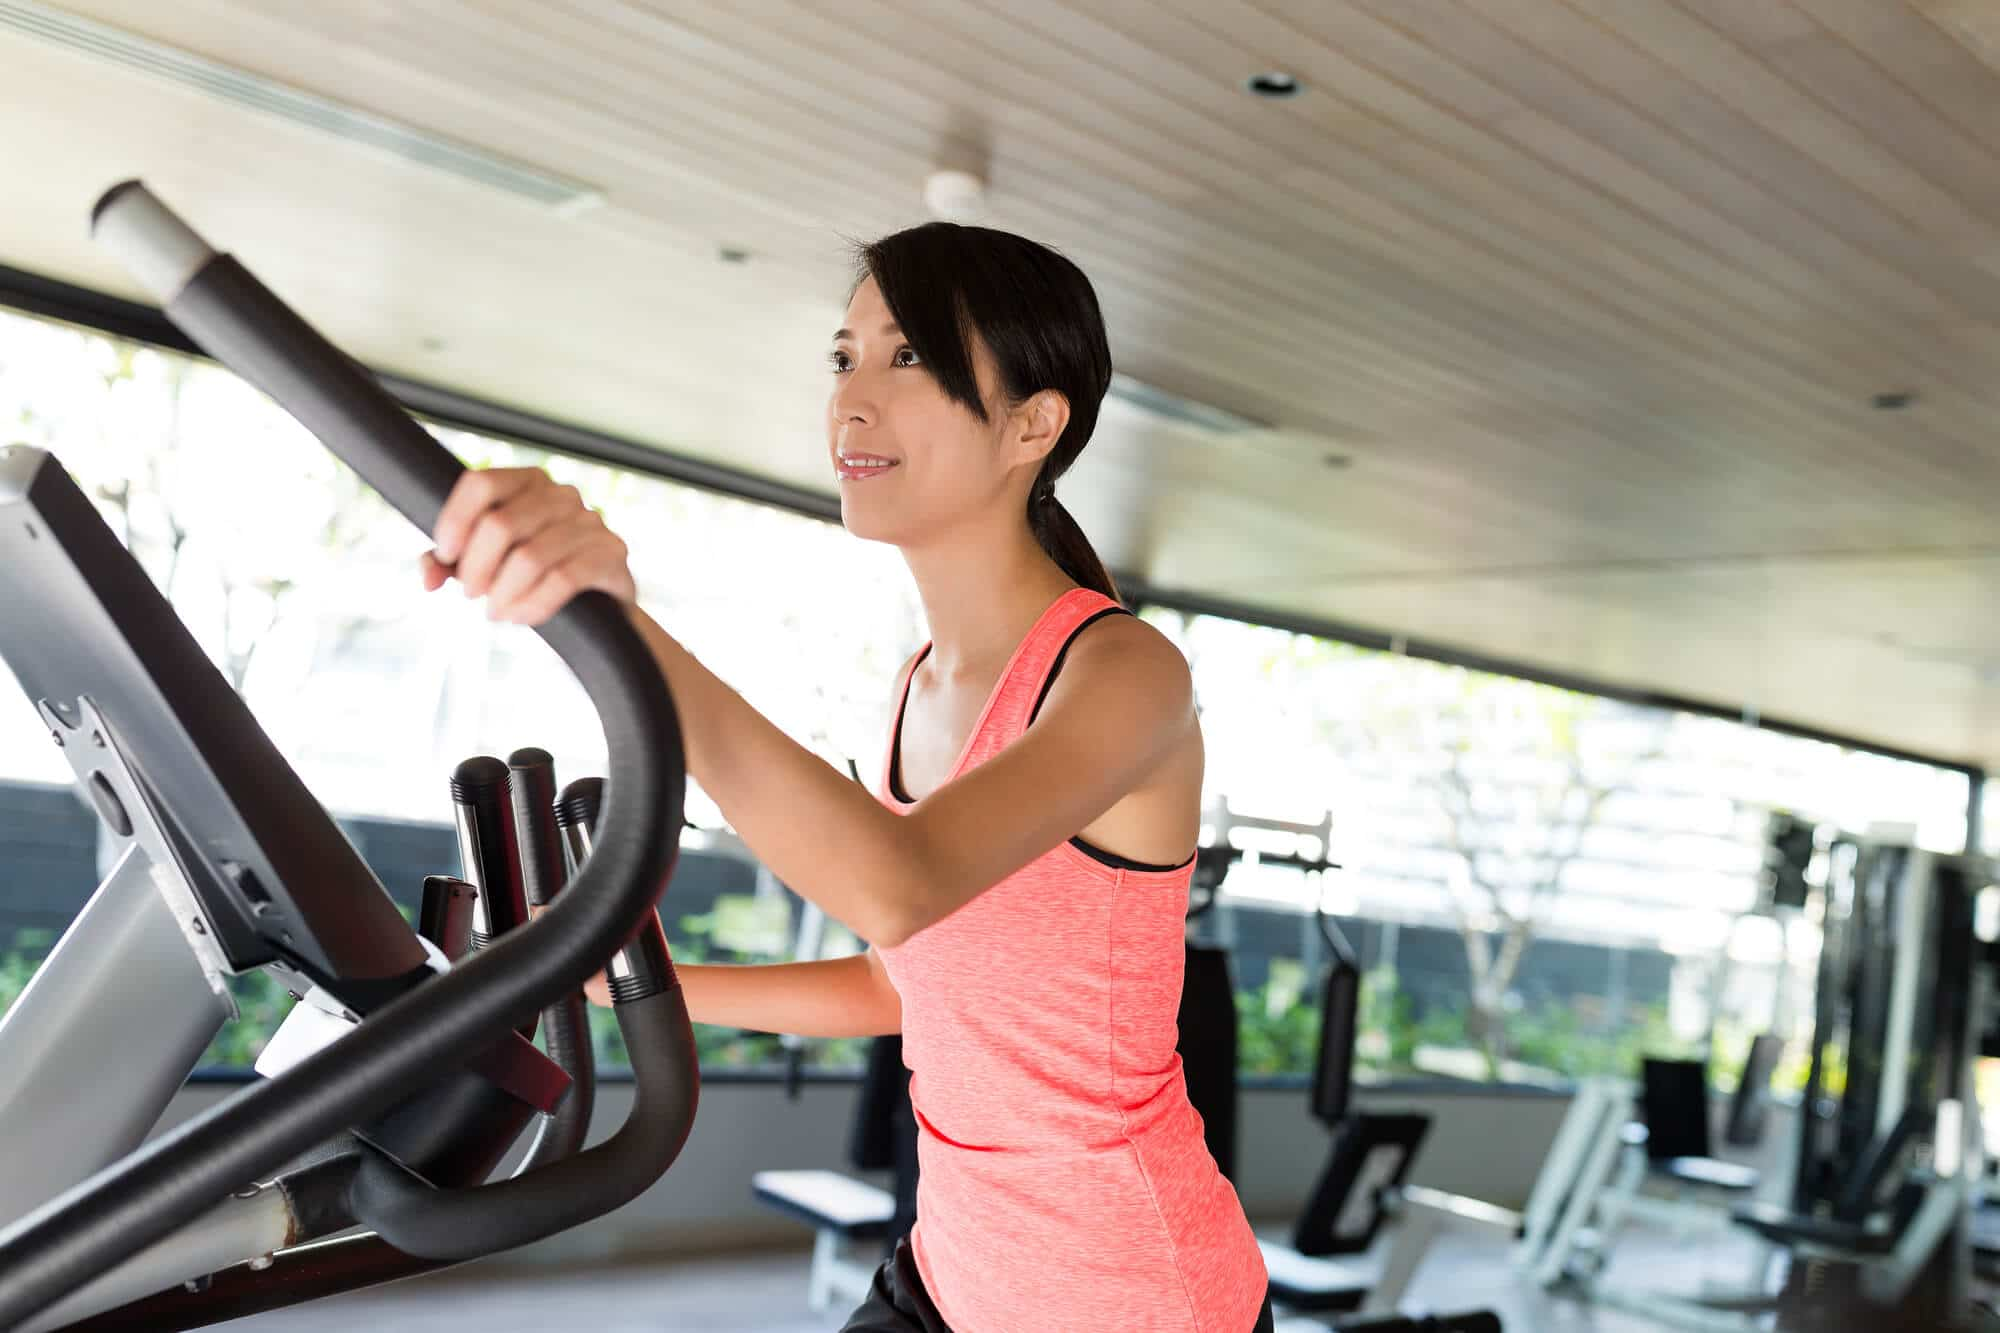 elliptical for toning stomach - Fitness Expo